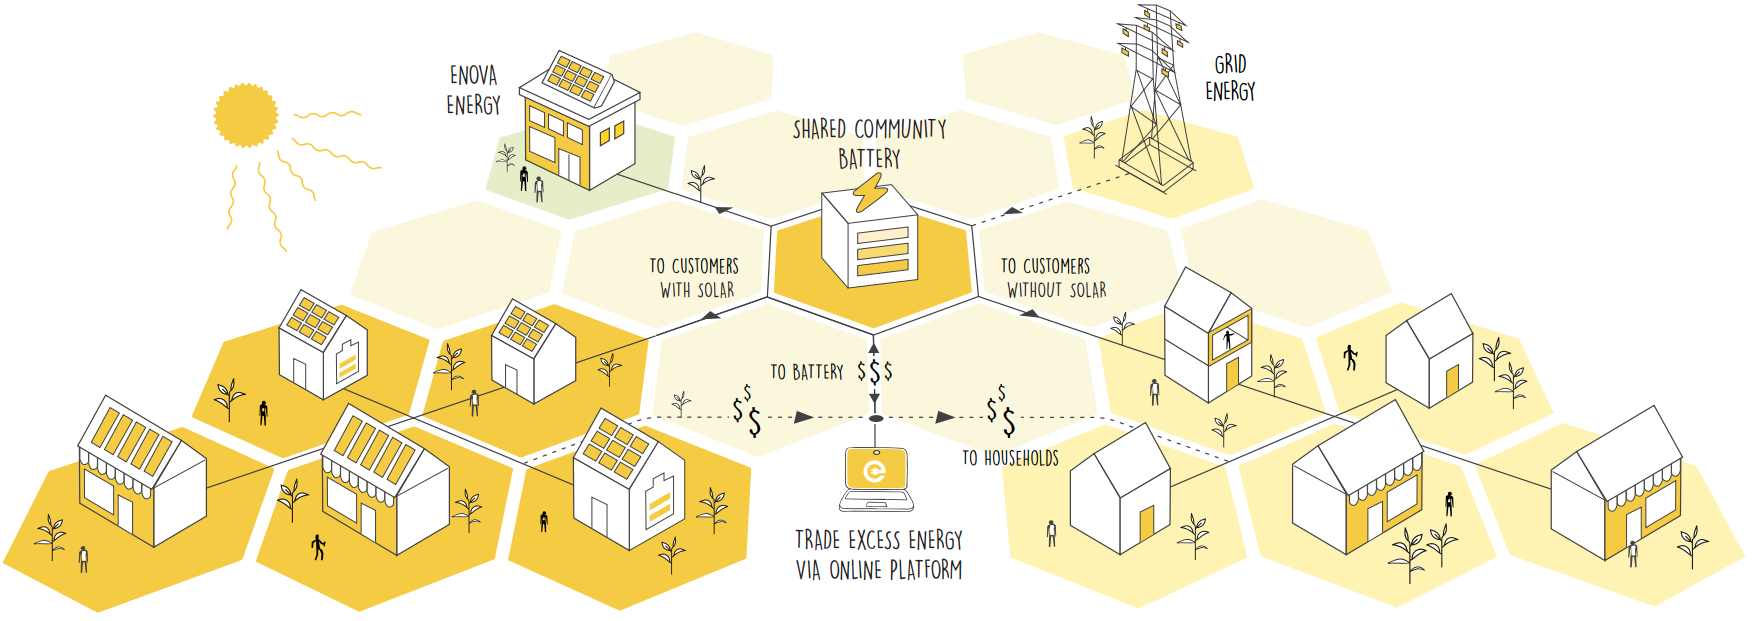 Enovas The Beehive Project Shared Community Battery Infographic